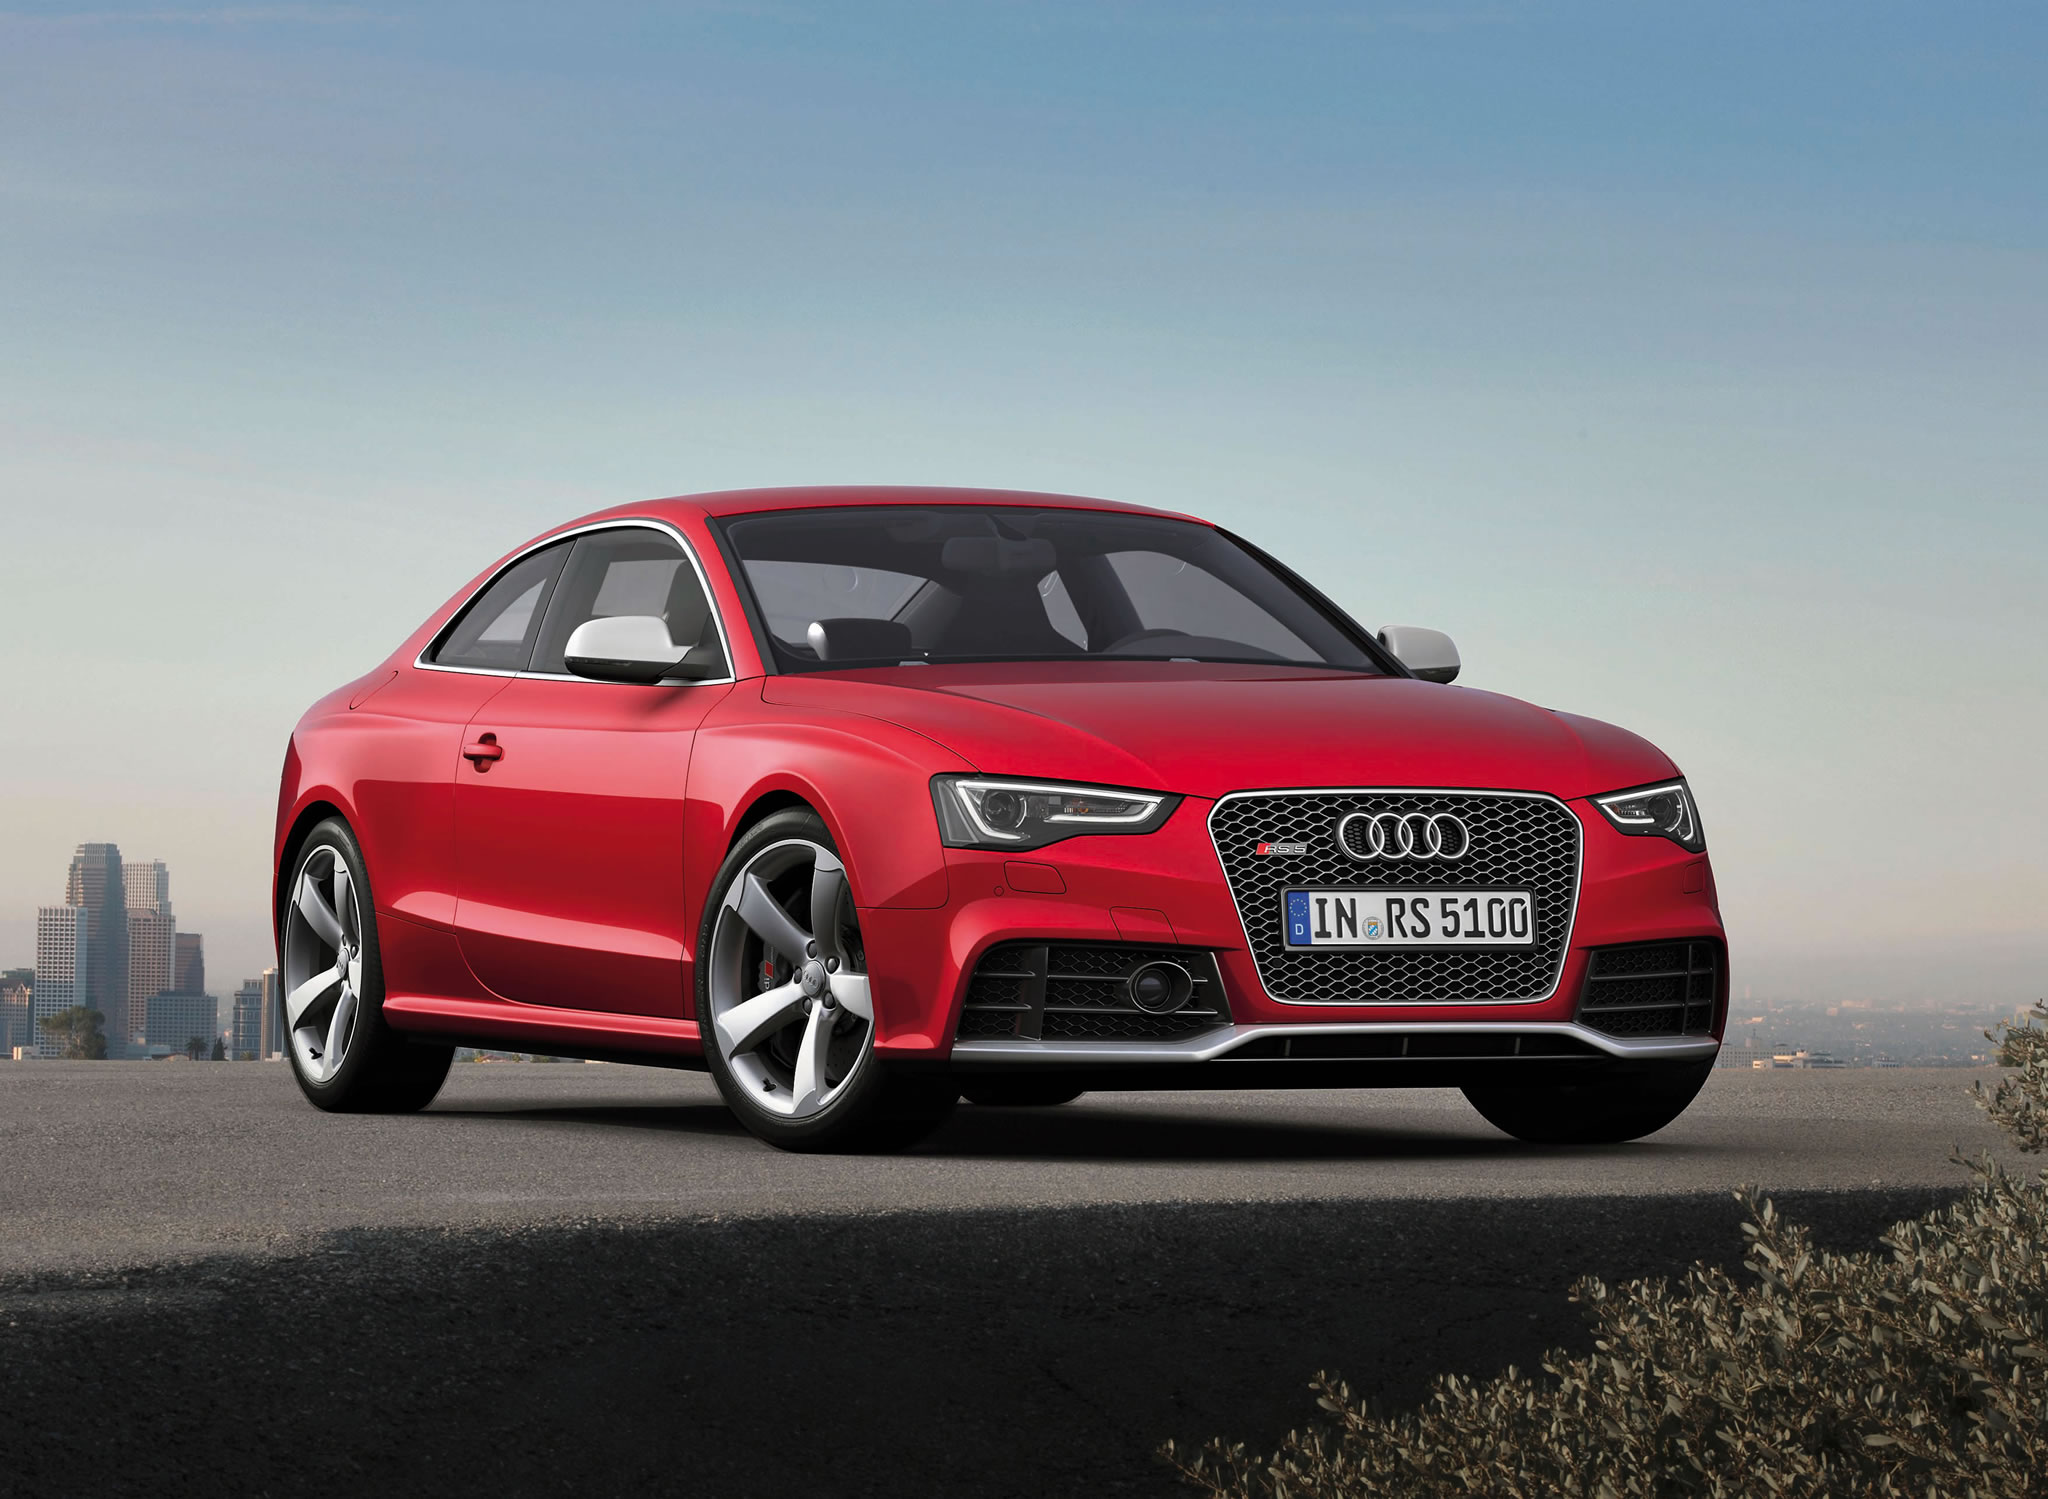 2014 audi rs 5 coupe front photo misano red color size 2048 x 1499 nr 10 49. Black Bedroom Furniture Sets. Home Design Ideas